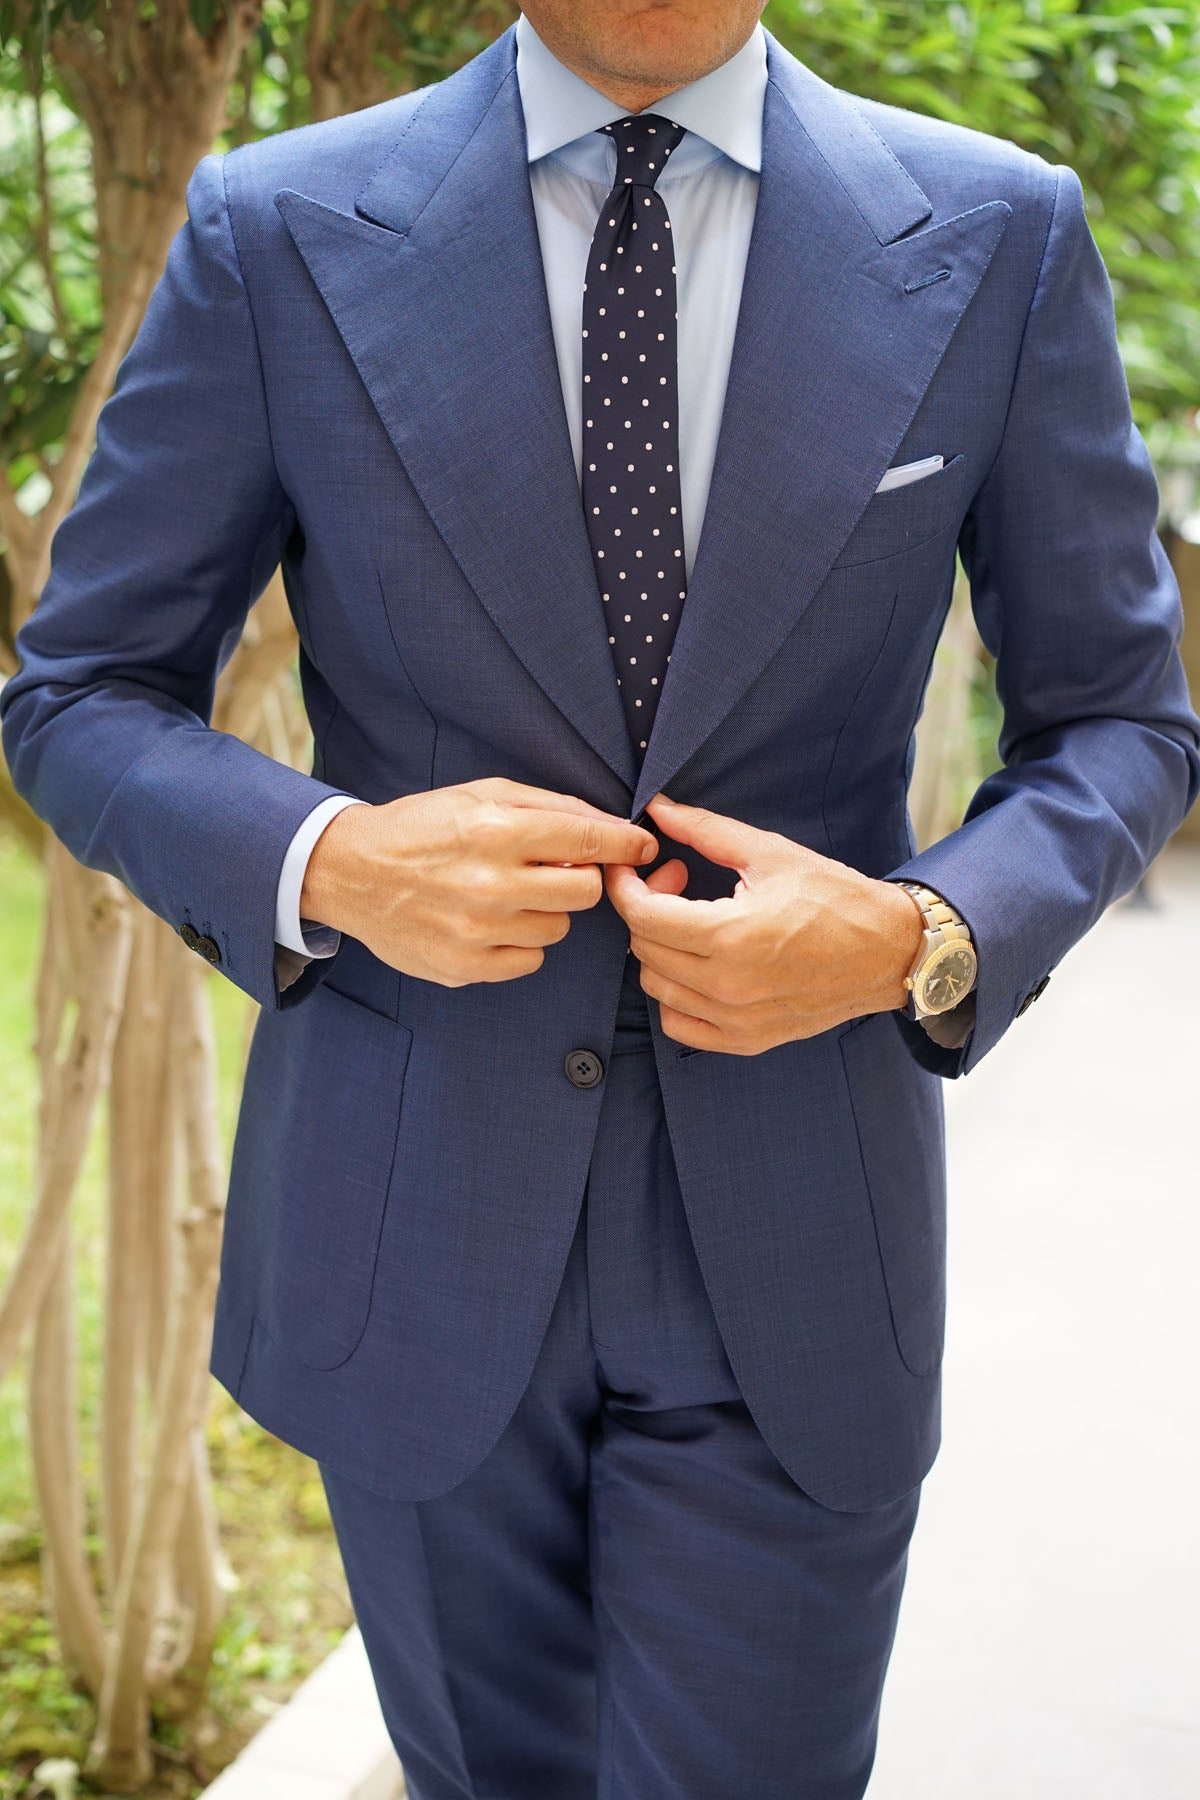 Navy Blue with White Polka Dots - Skinny Tie